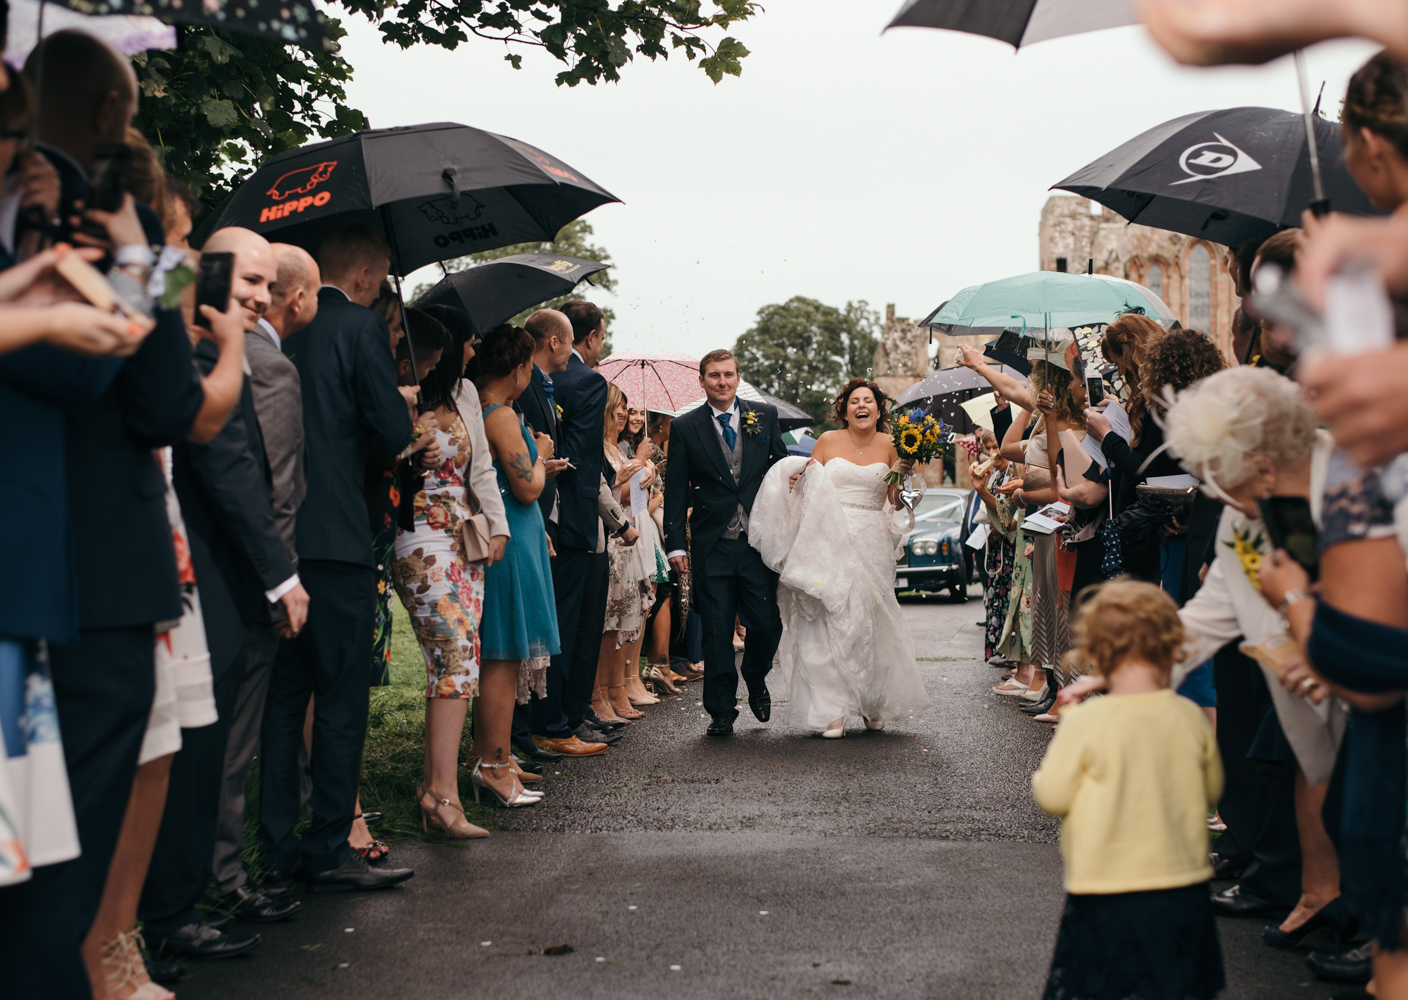 The bride and groom being showered with confetti